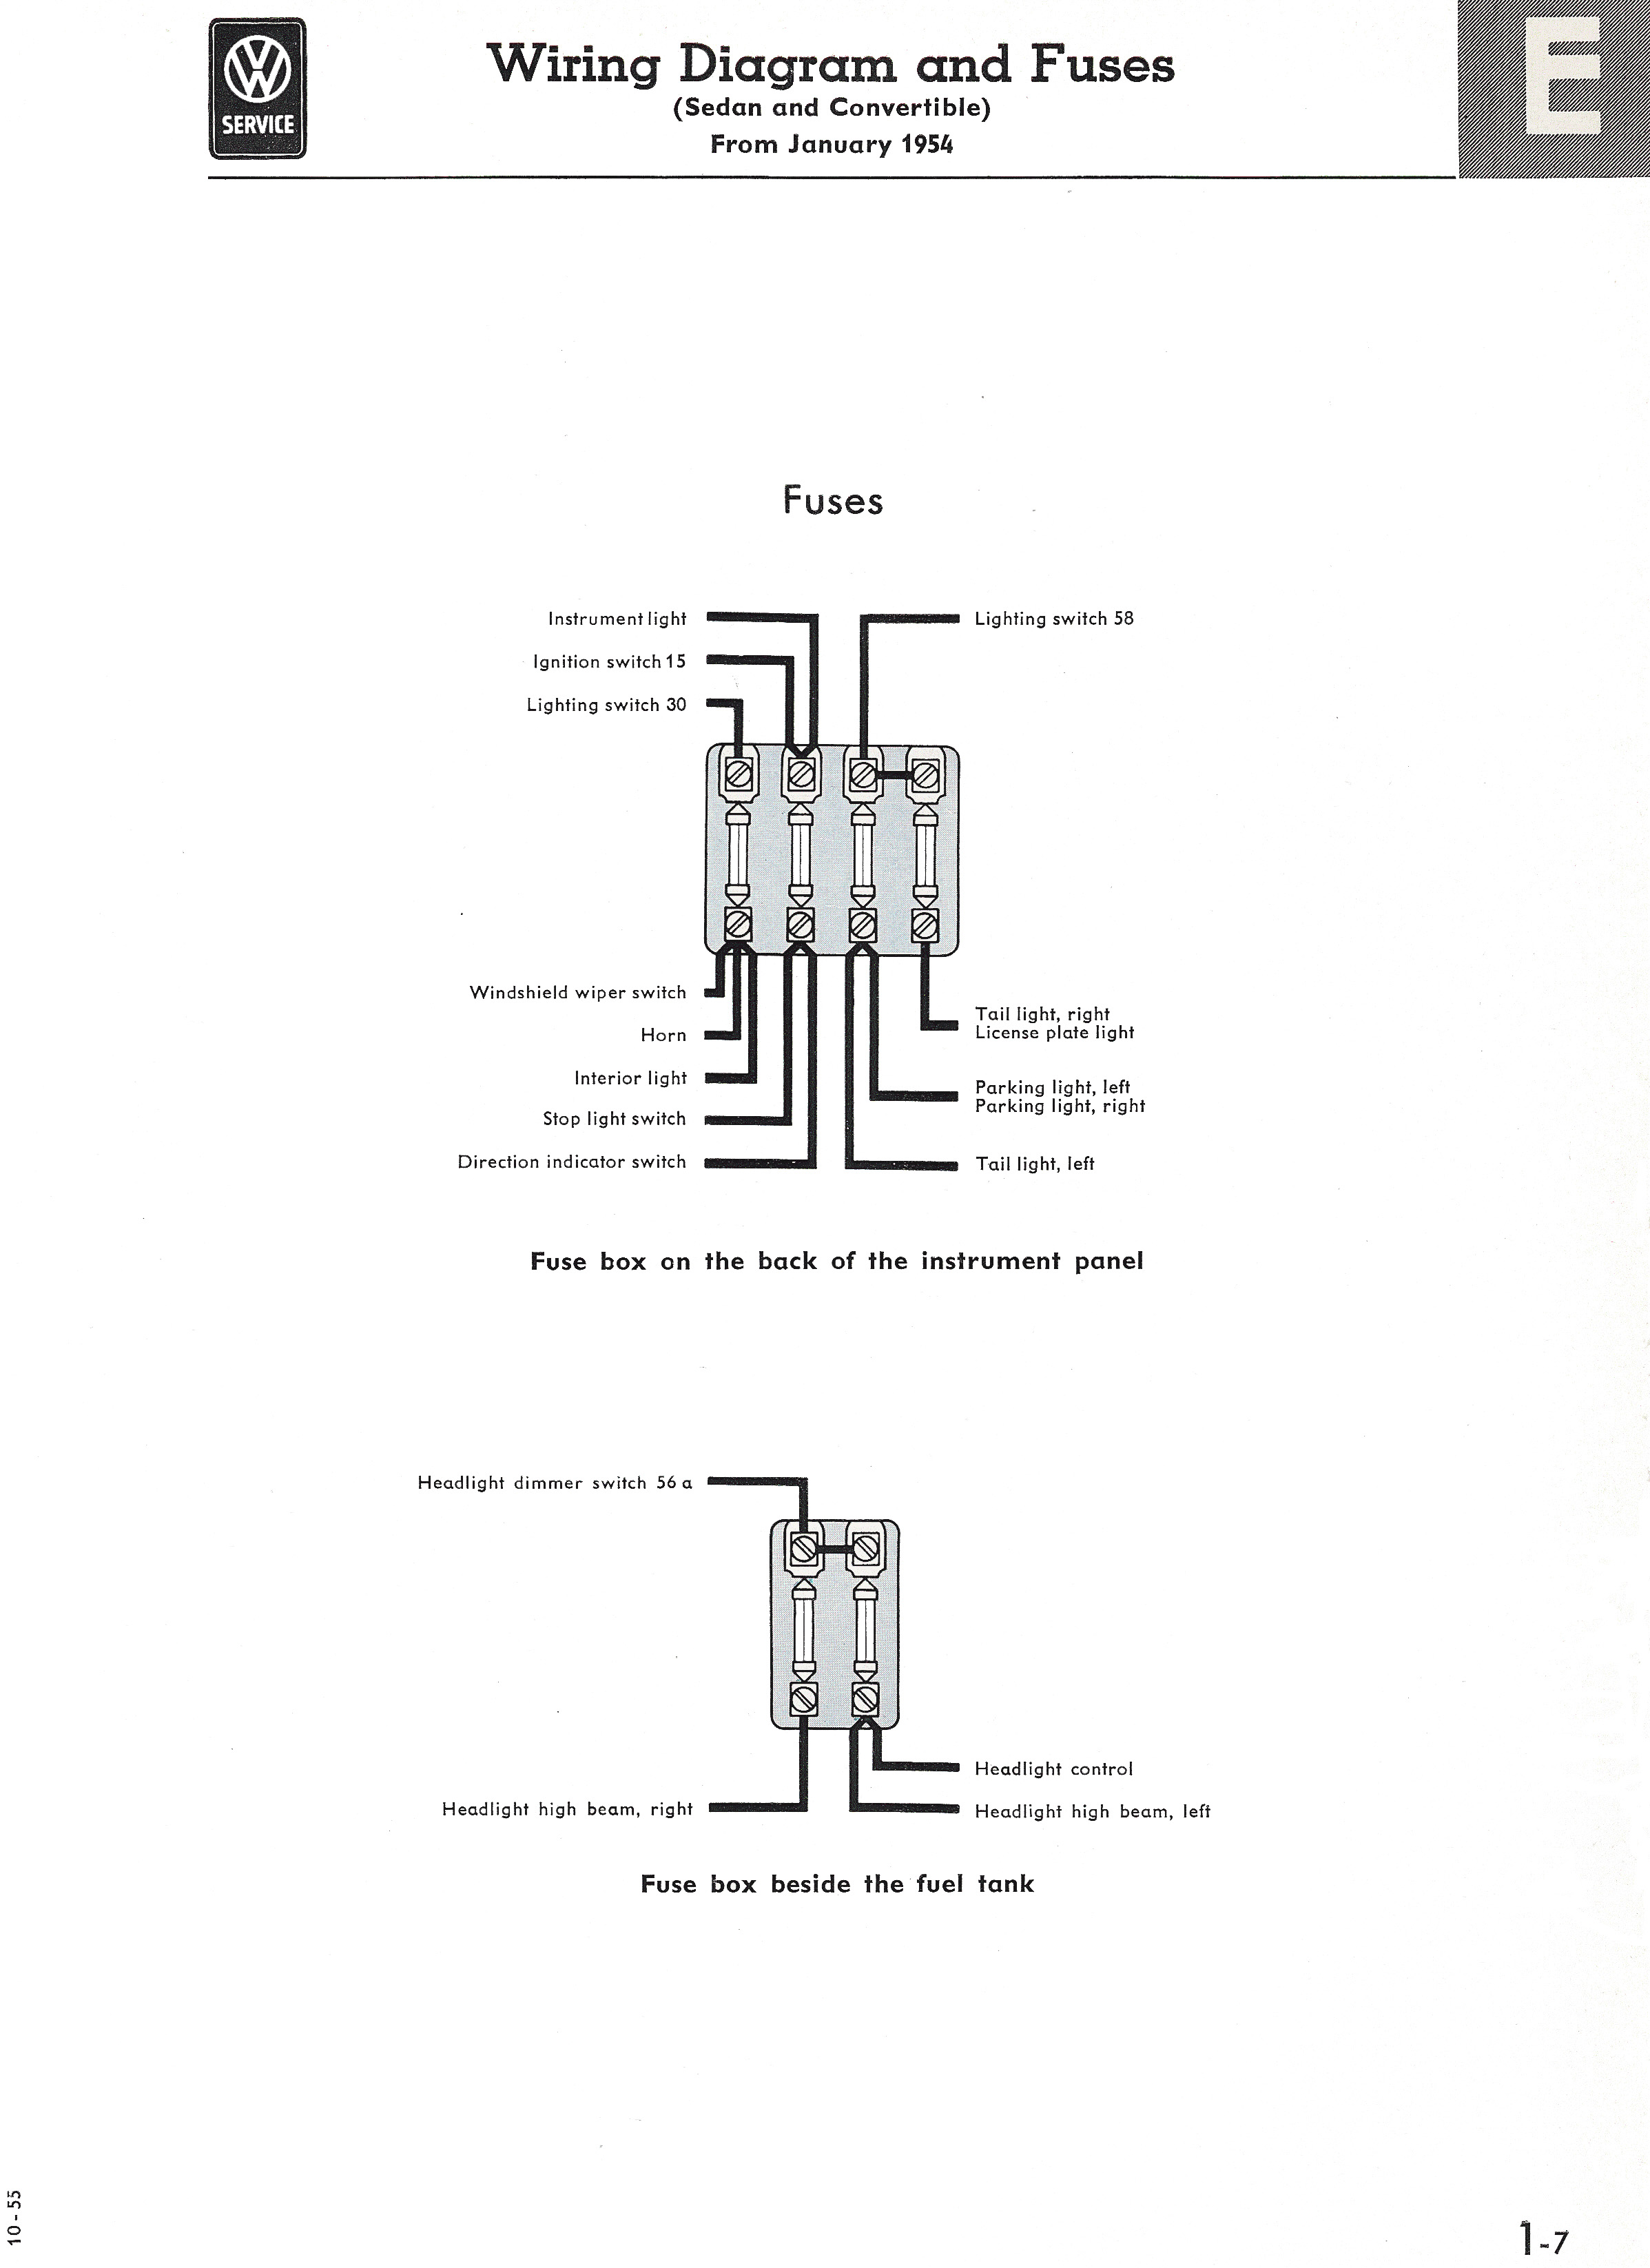 Type 1 Wiring Diagrams Diagram For Fuel Tank